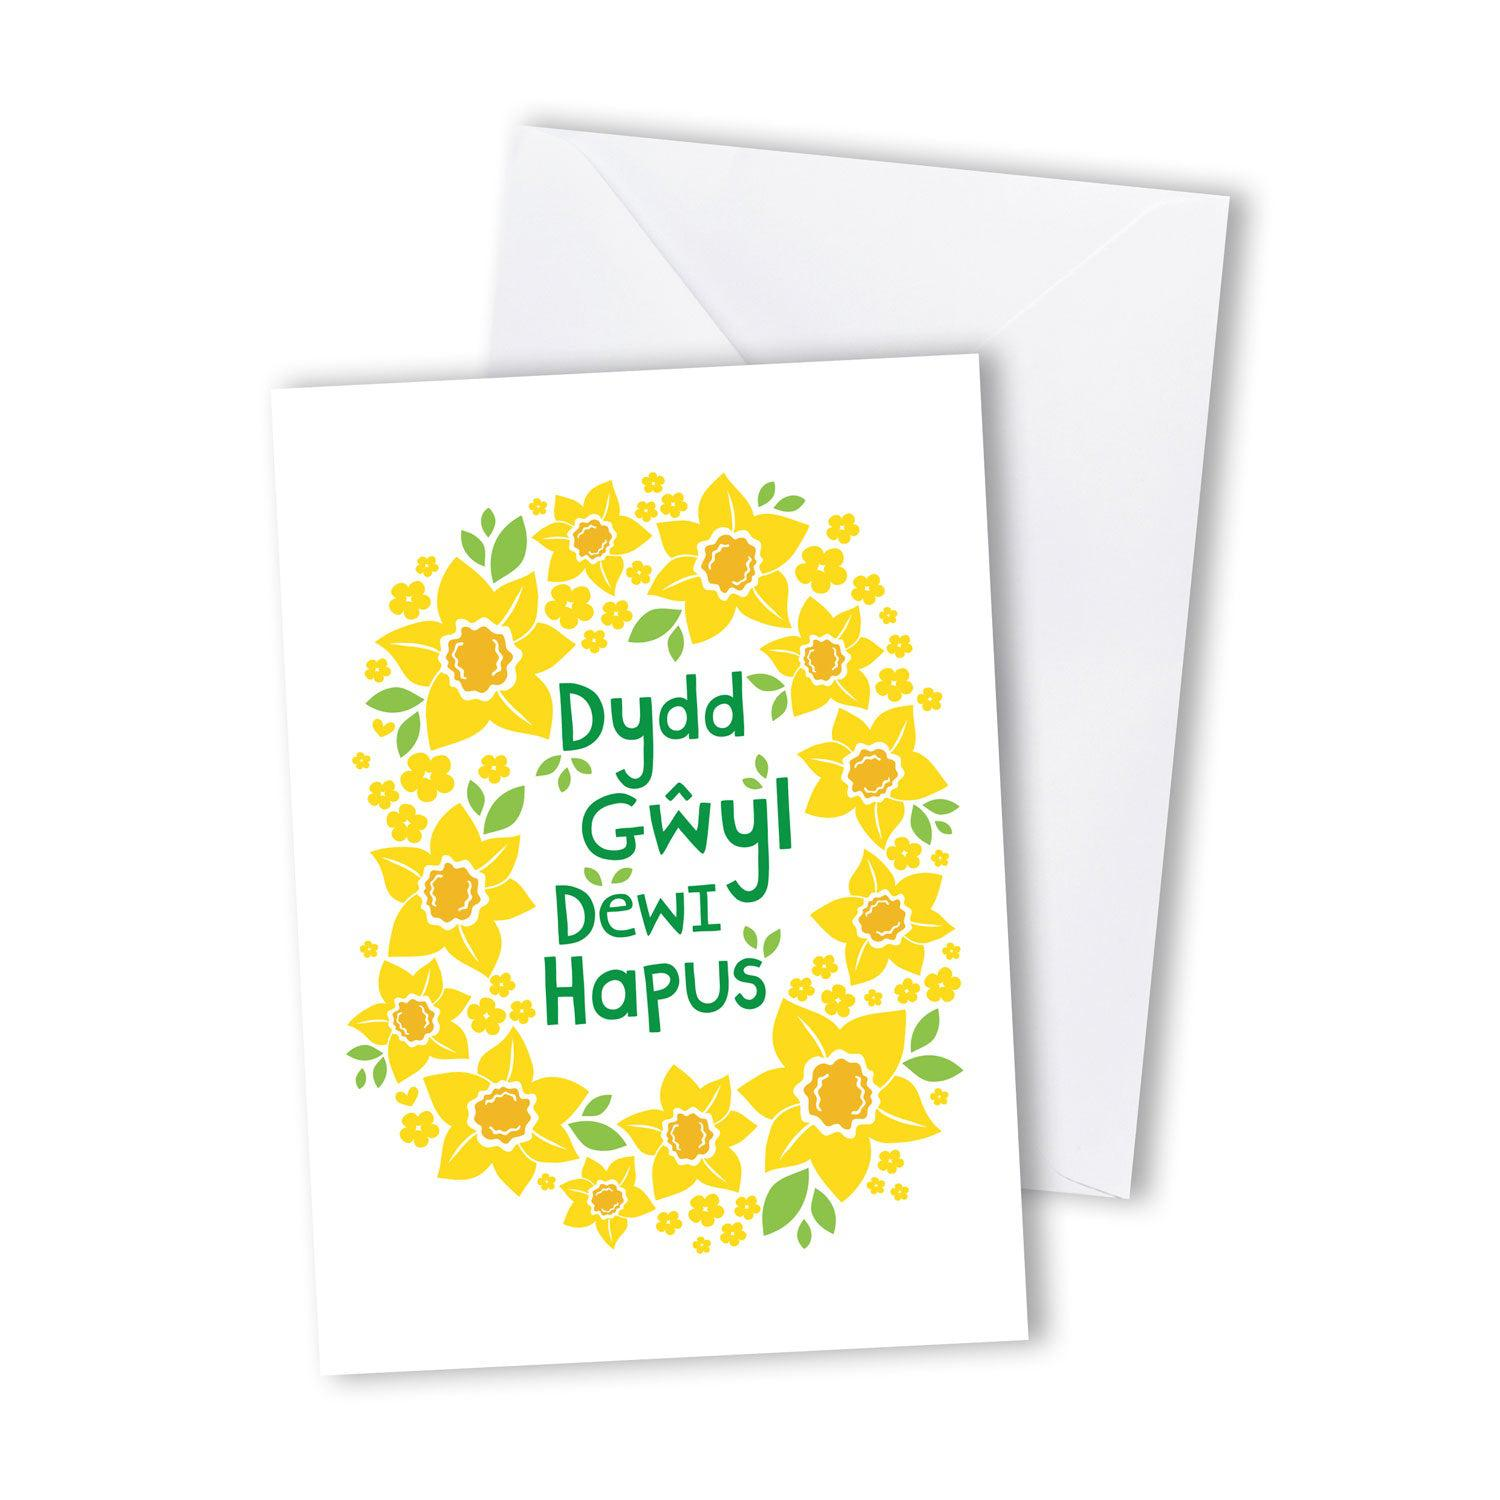 Card - Happy St. David's Day / Dydd Gwyl Dewi Hapus - Daffodils